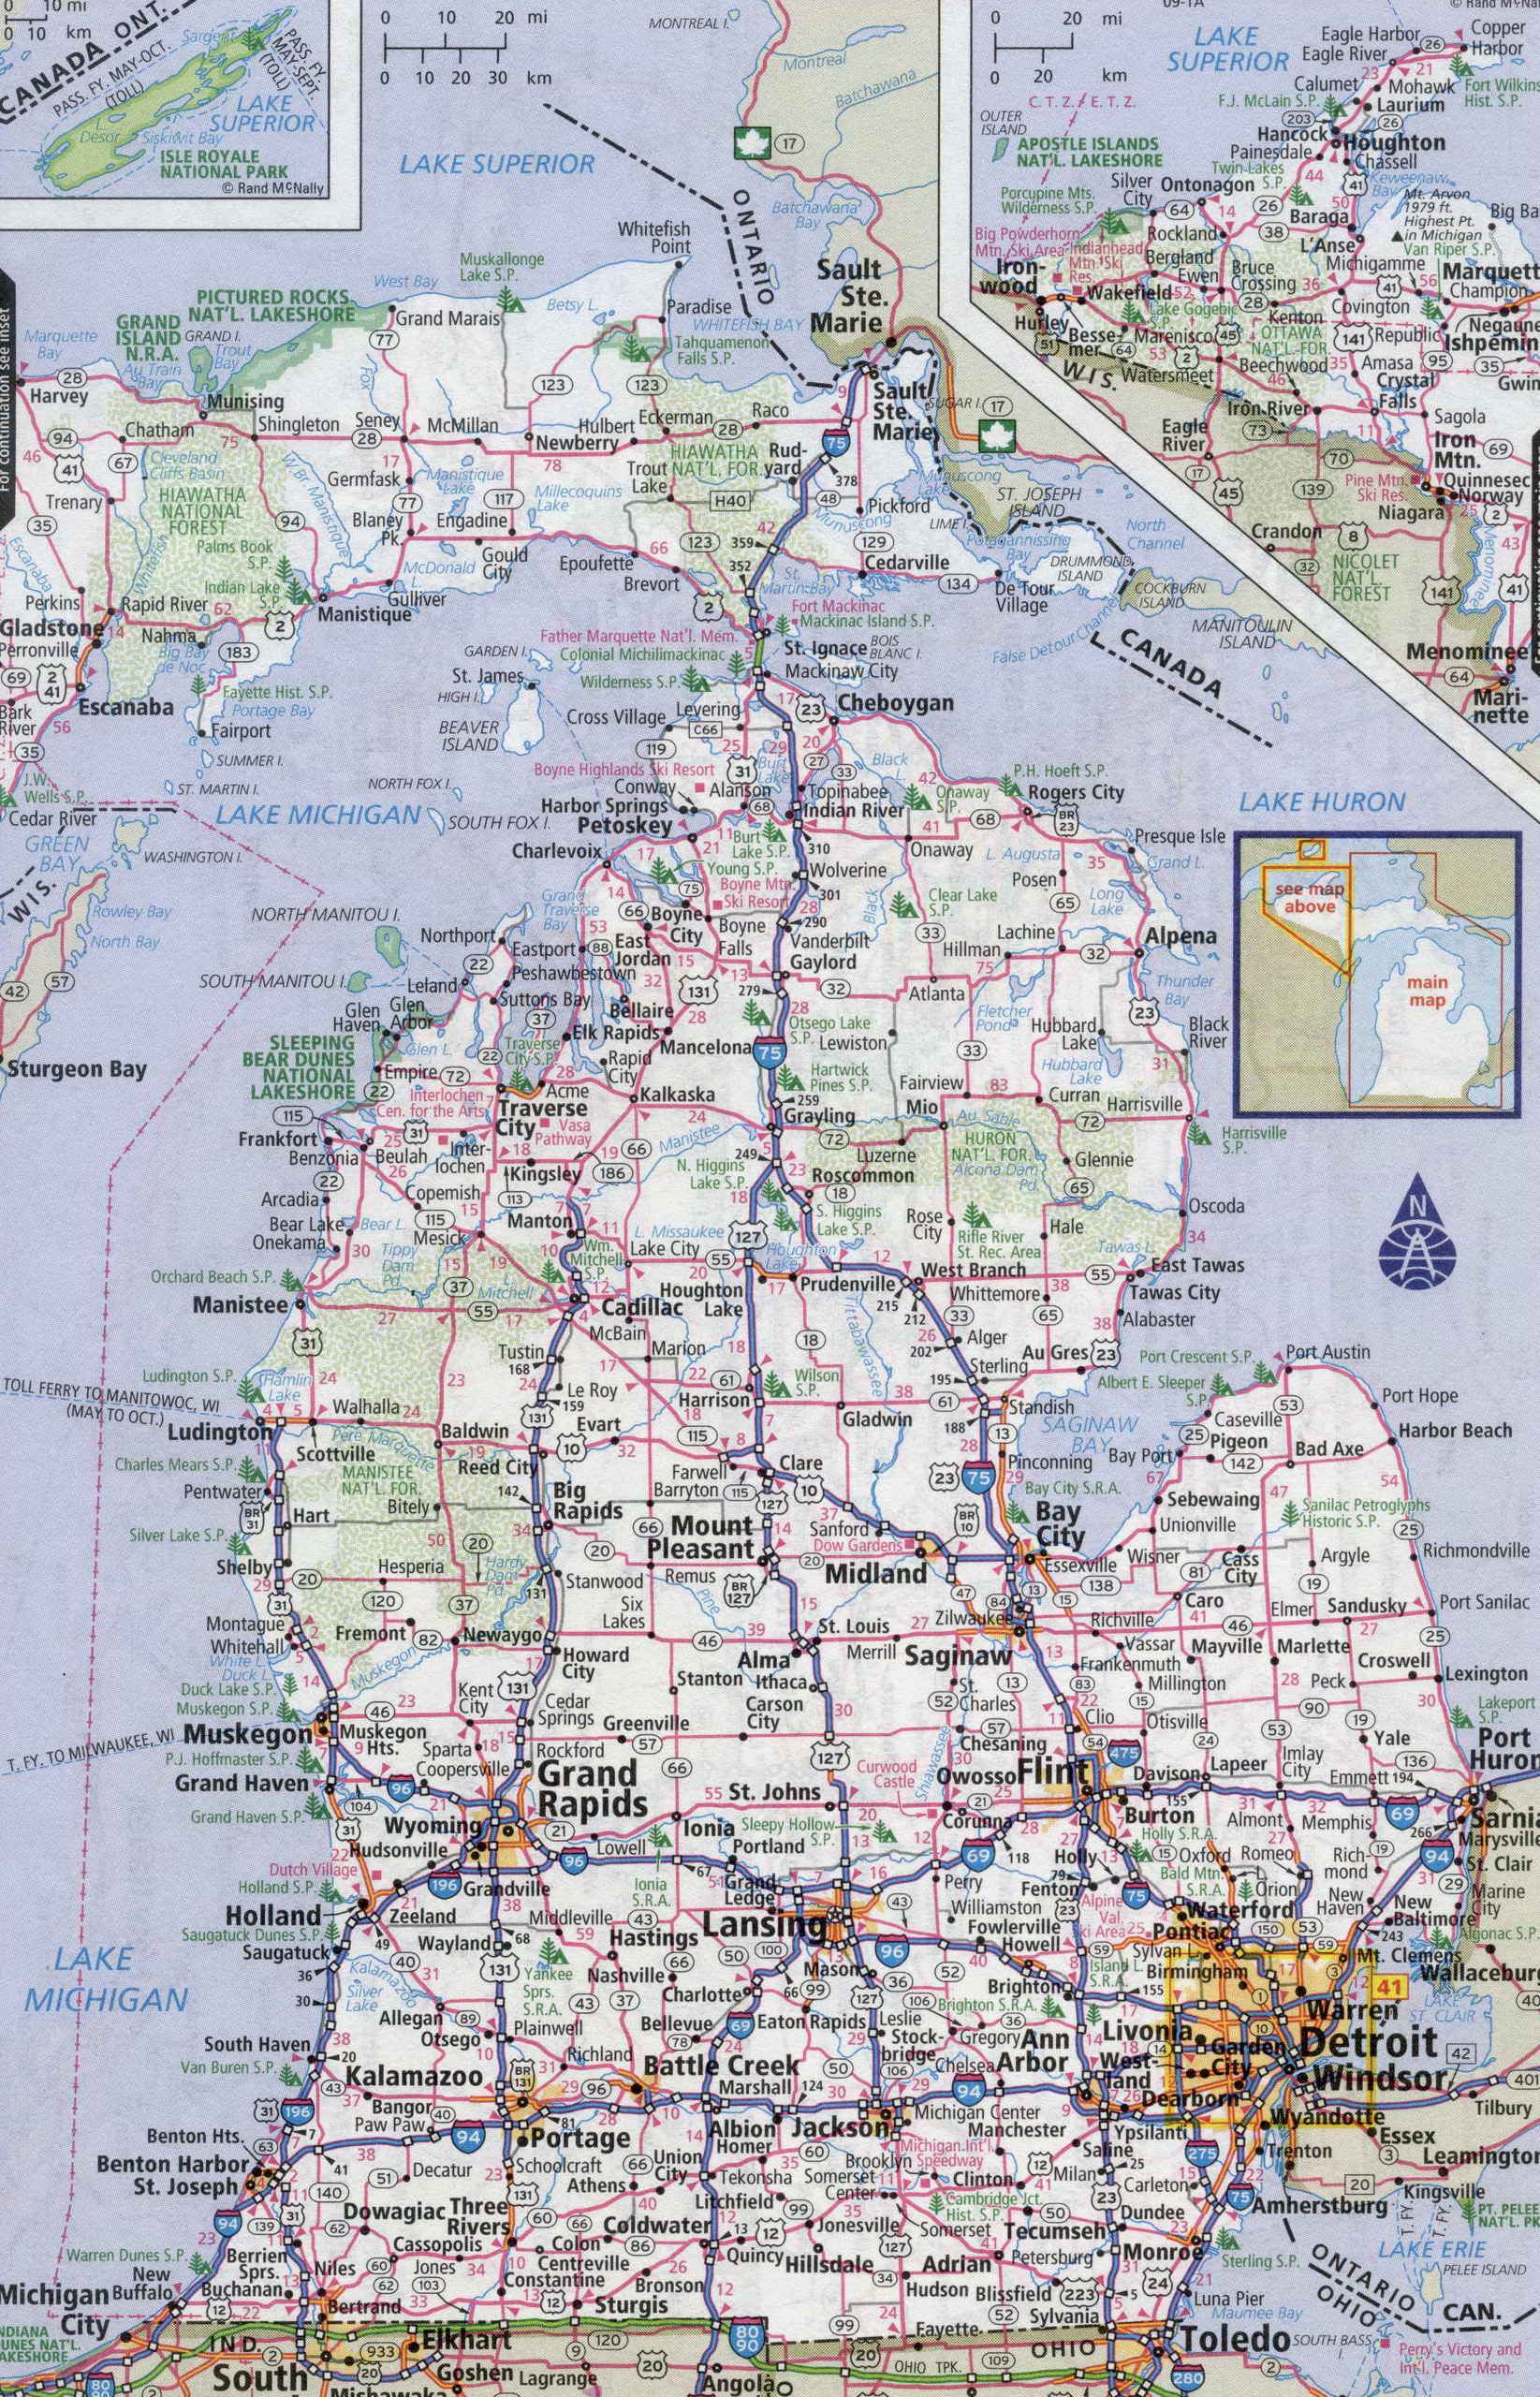 Large Detailed Roads And Highways Map Of Michigan State With - Detailed usa map with states and cities